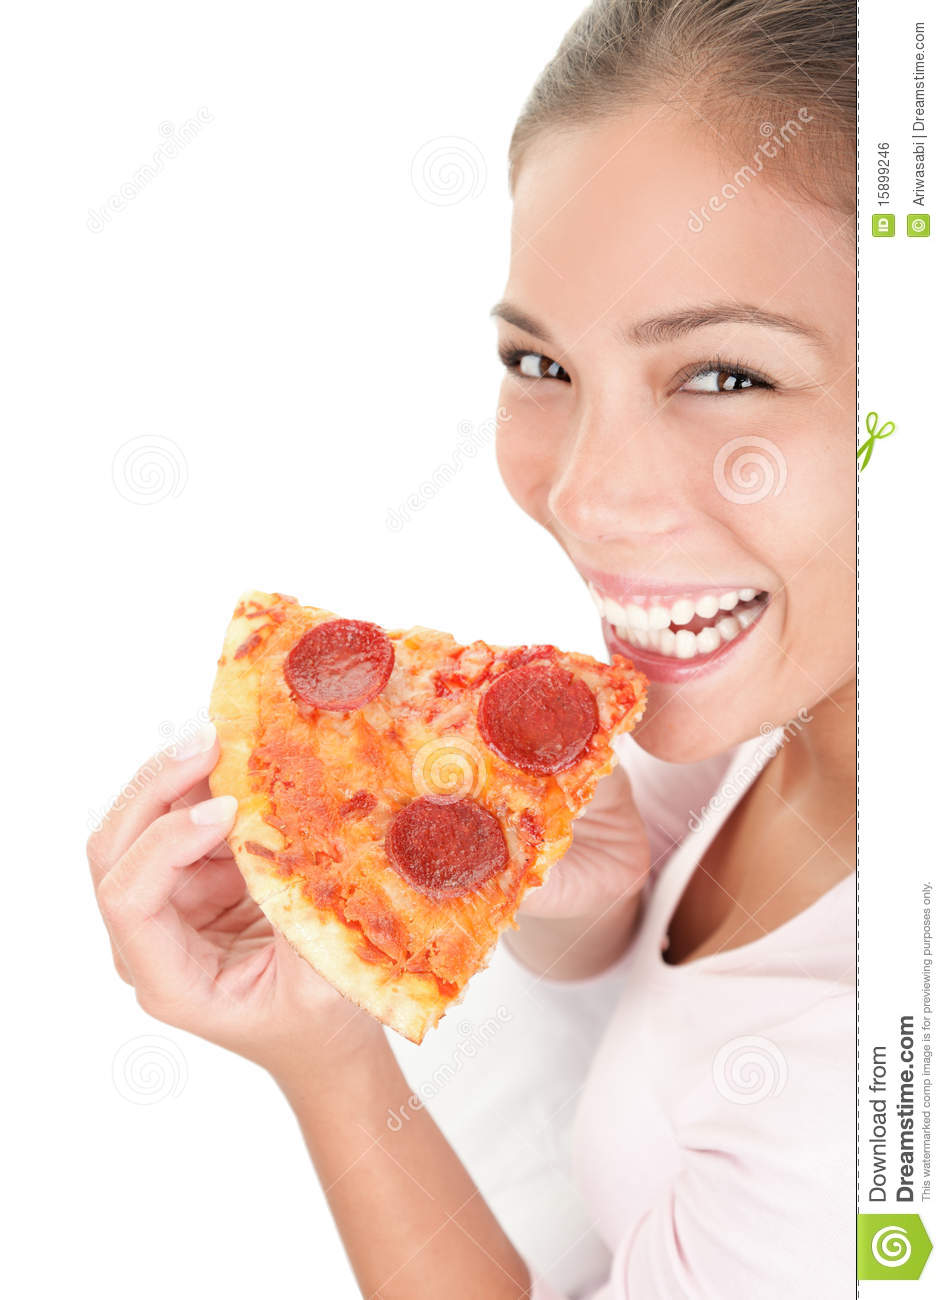 woman eating pizza stock photo image of funny adult. Black Bedroom Furniture Sets. Home Design Ideas